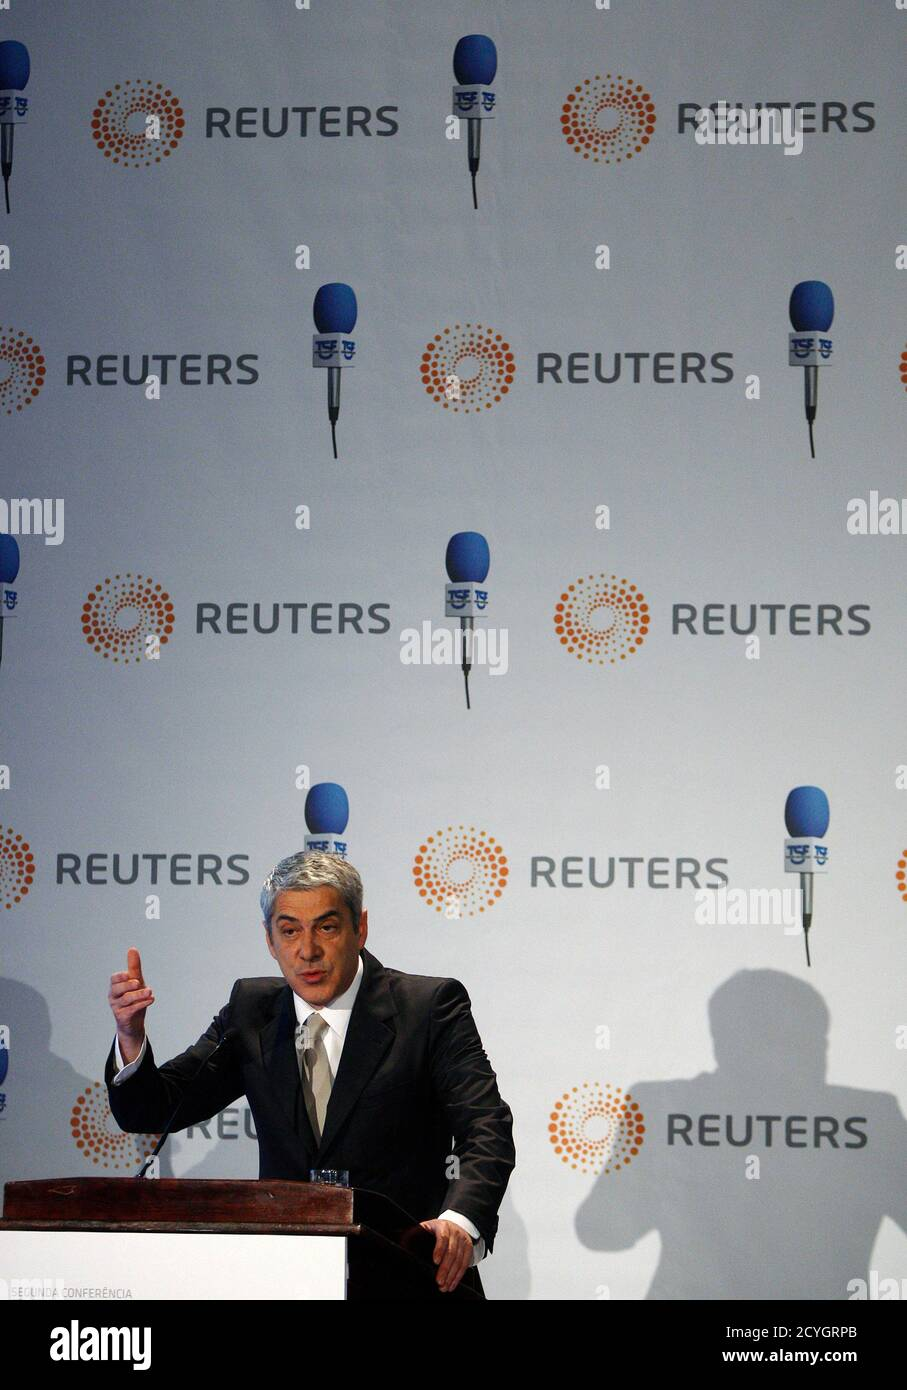 Portugal's Prime Minister Jose Socrates addresses a conference organised by Reuters and TSF radio in Lisbon February 28, 2011. Portugal promised on Monday to cut its budget deficit and implement reforms but Teixeira dos Santos warned this may all be in vain if Europe does not take strong action within weeks to resolve the region's debt crisis.  REUTERS/Rafael Marchante (PORTUGAL - Tags: BUSINESS POLITICS) Foto de stock